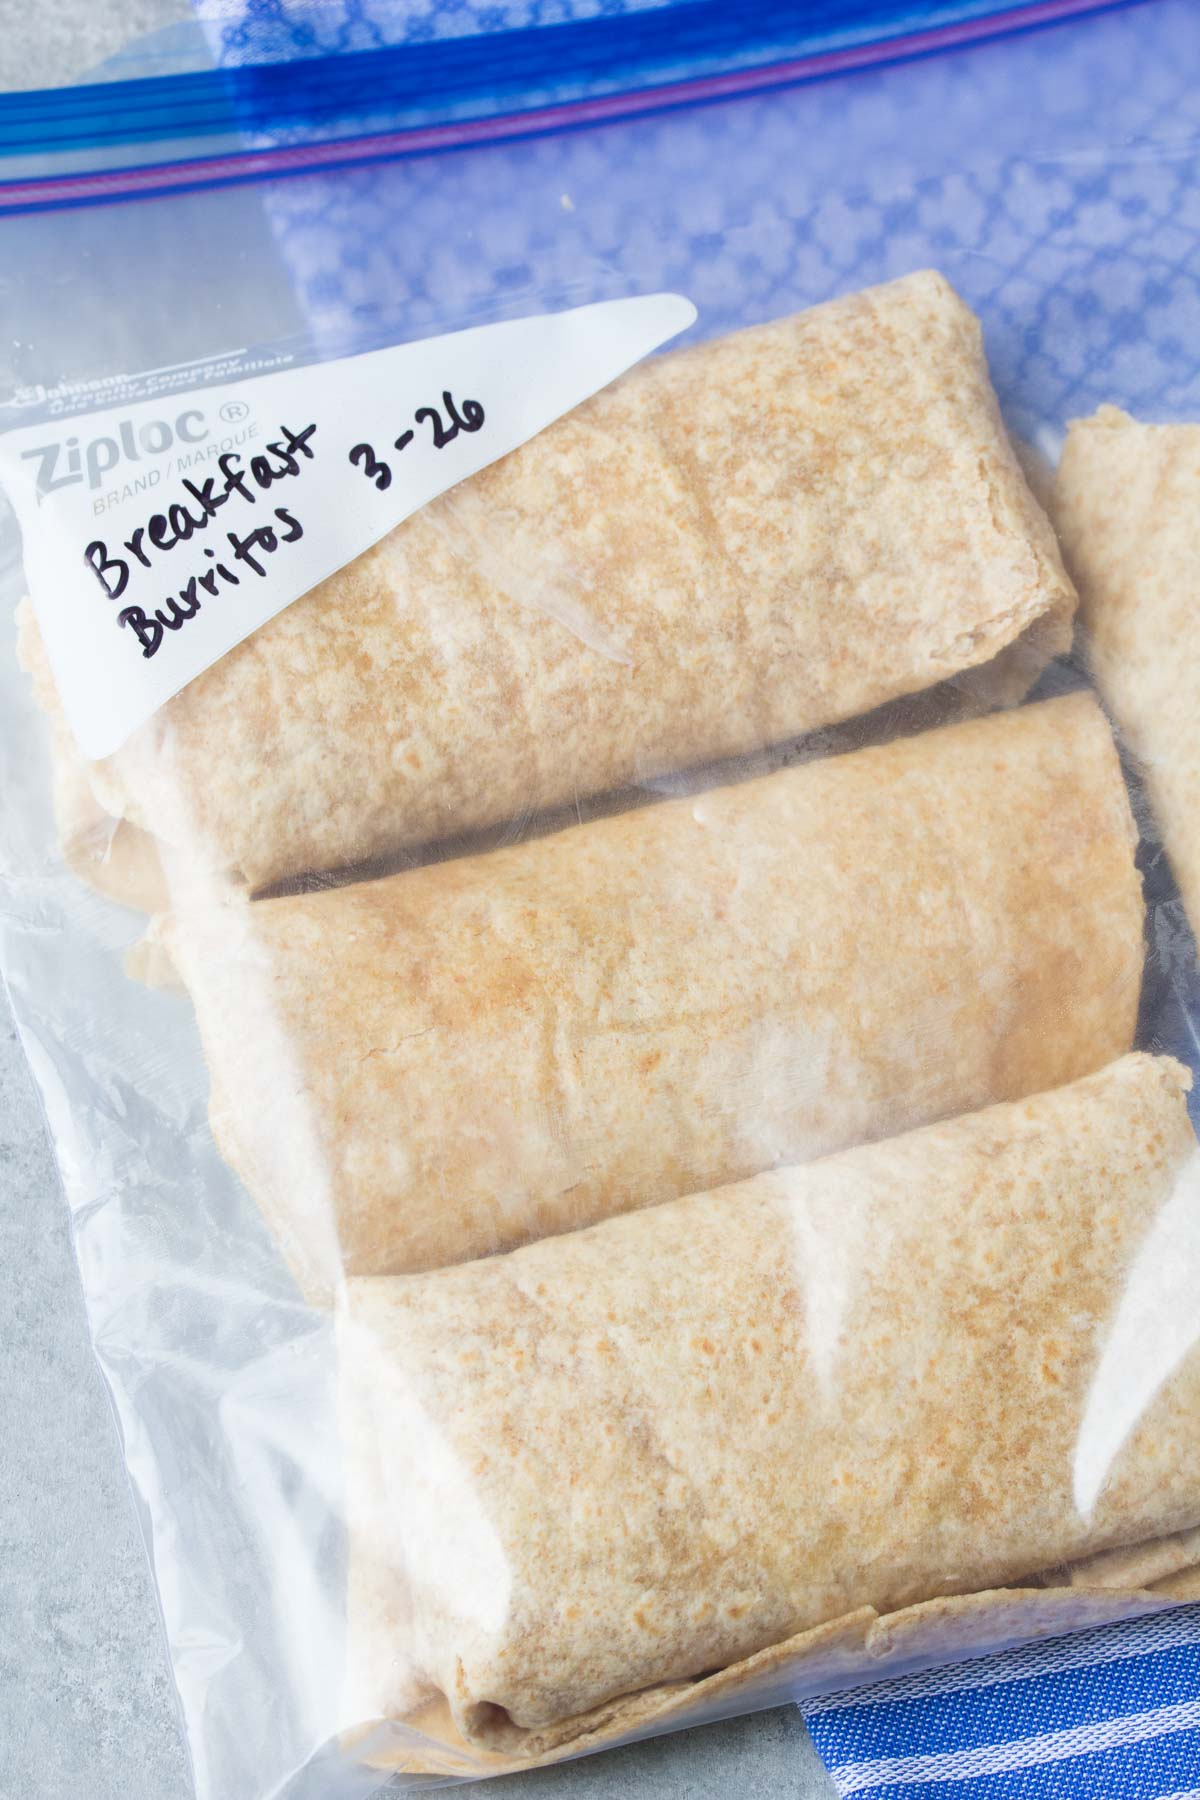 Freezer vegetable breakfast burritos recipe video kristines kitchen healthy freezer vegetable breakfast burritos that you can make ahead and freeze for busy mornings forumfinder Choice Image